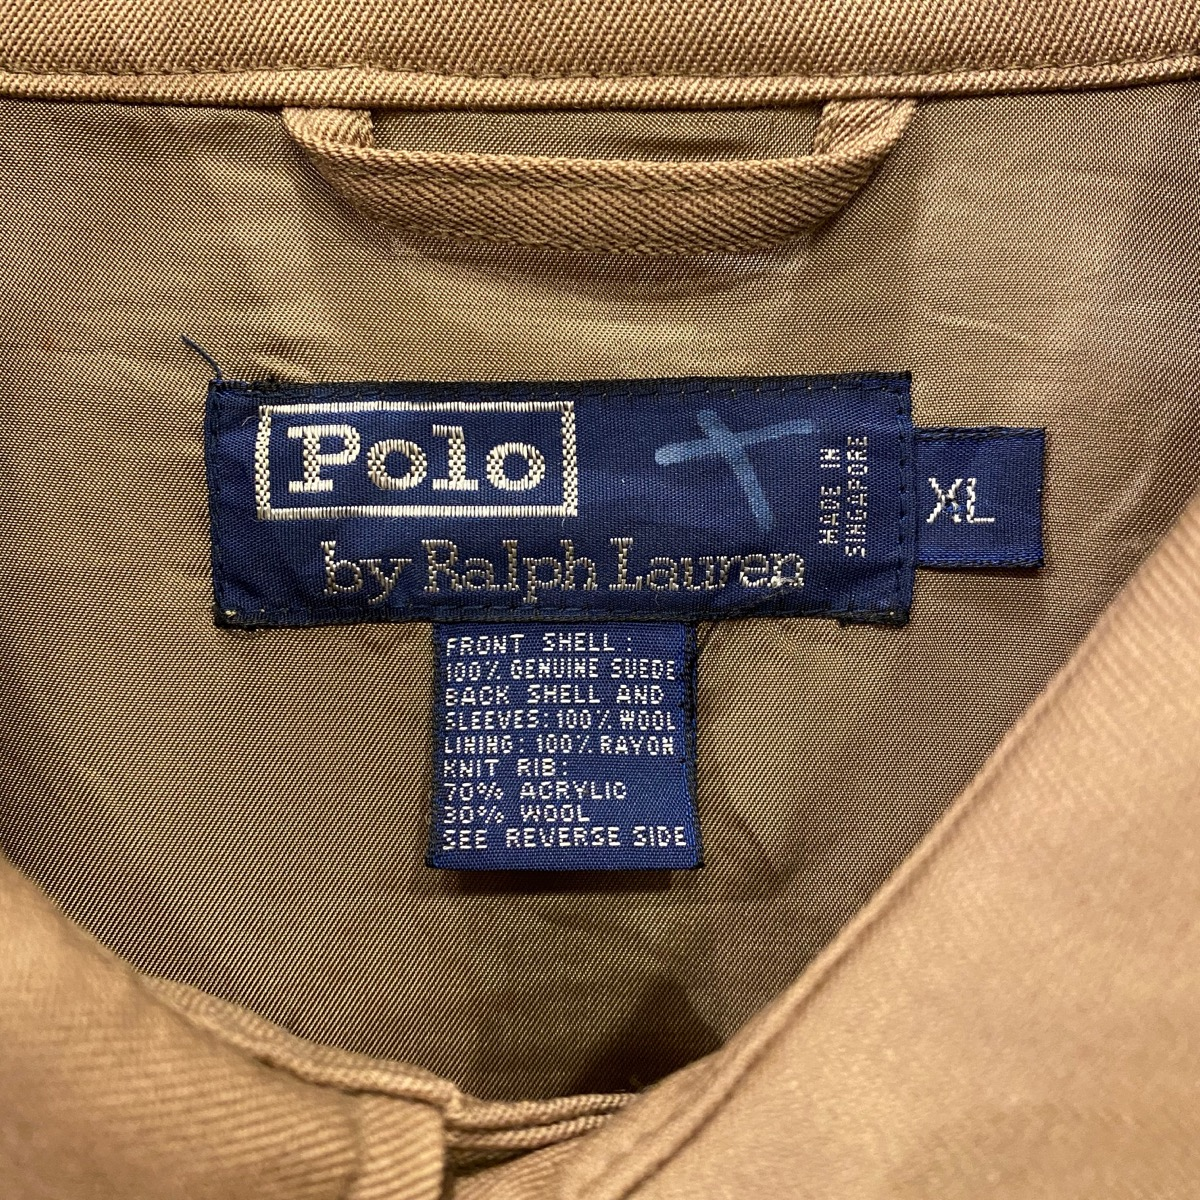 th_pololeatherjkt2